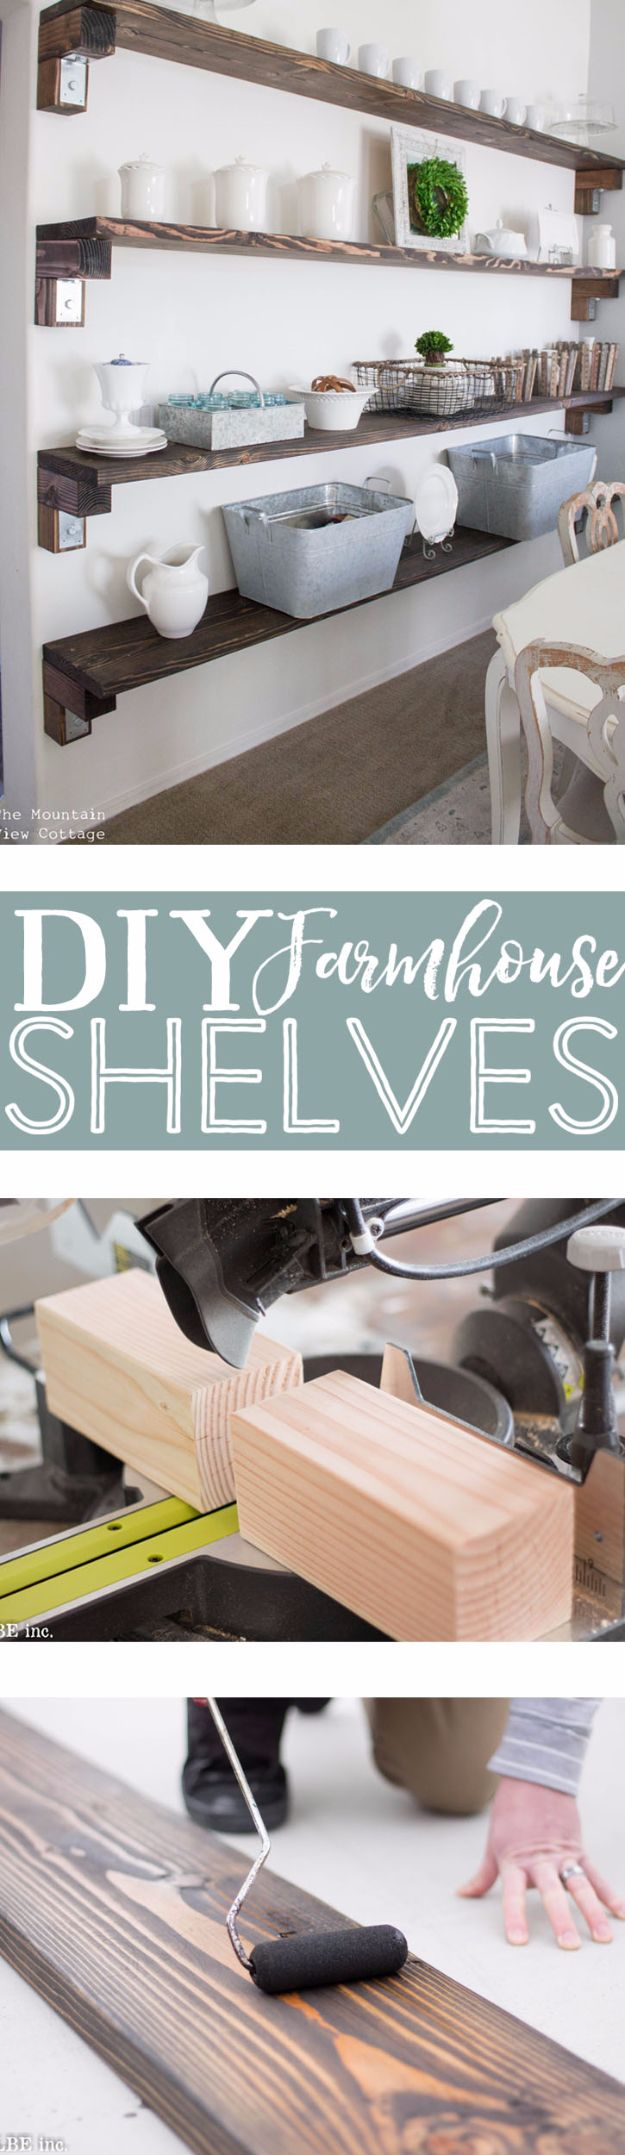 DIY Farmhouse Style Decor Ideas - DIY Farmhouse Shelves - Rustic Ideas for Furniture, Paint Colors, Farm House Decoration for Living Room, Kitchen and Bedroom http://diyjoy.com/diy-farmhouse-decor-ideas